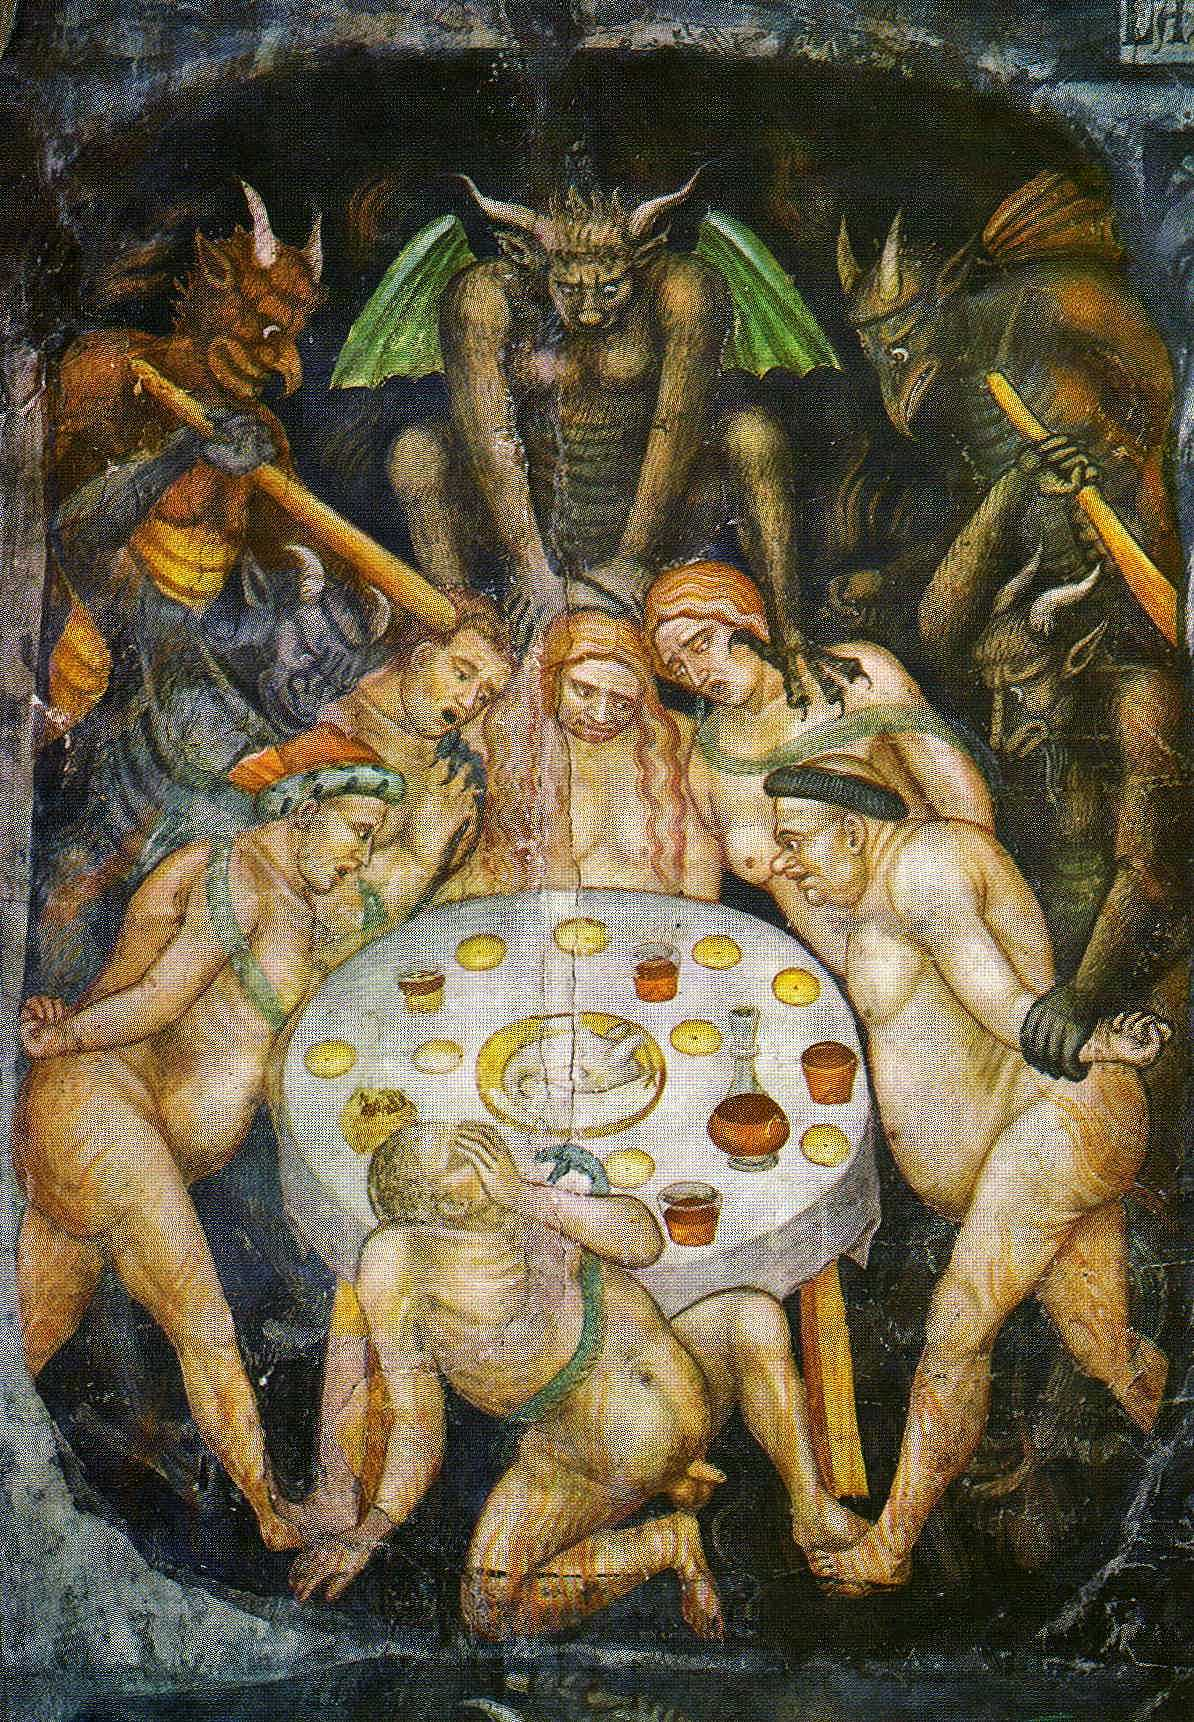 Taddeo di Bartolo - The Last Judgment  (detail of gluttony) c.1394